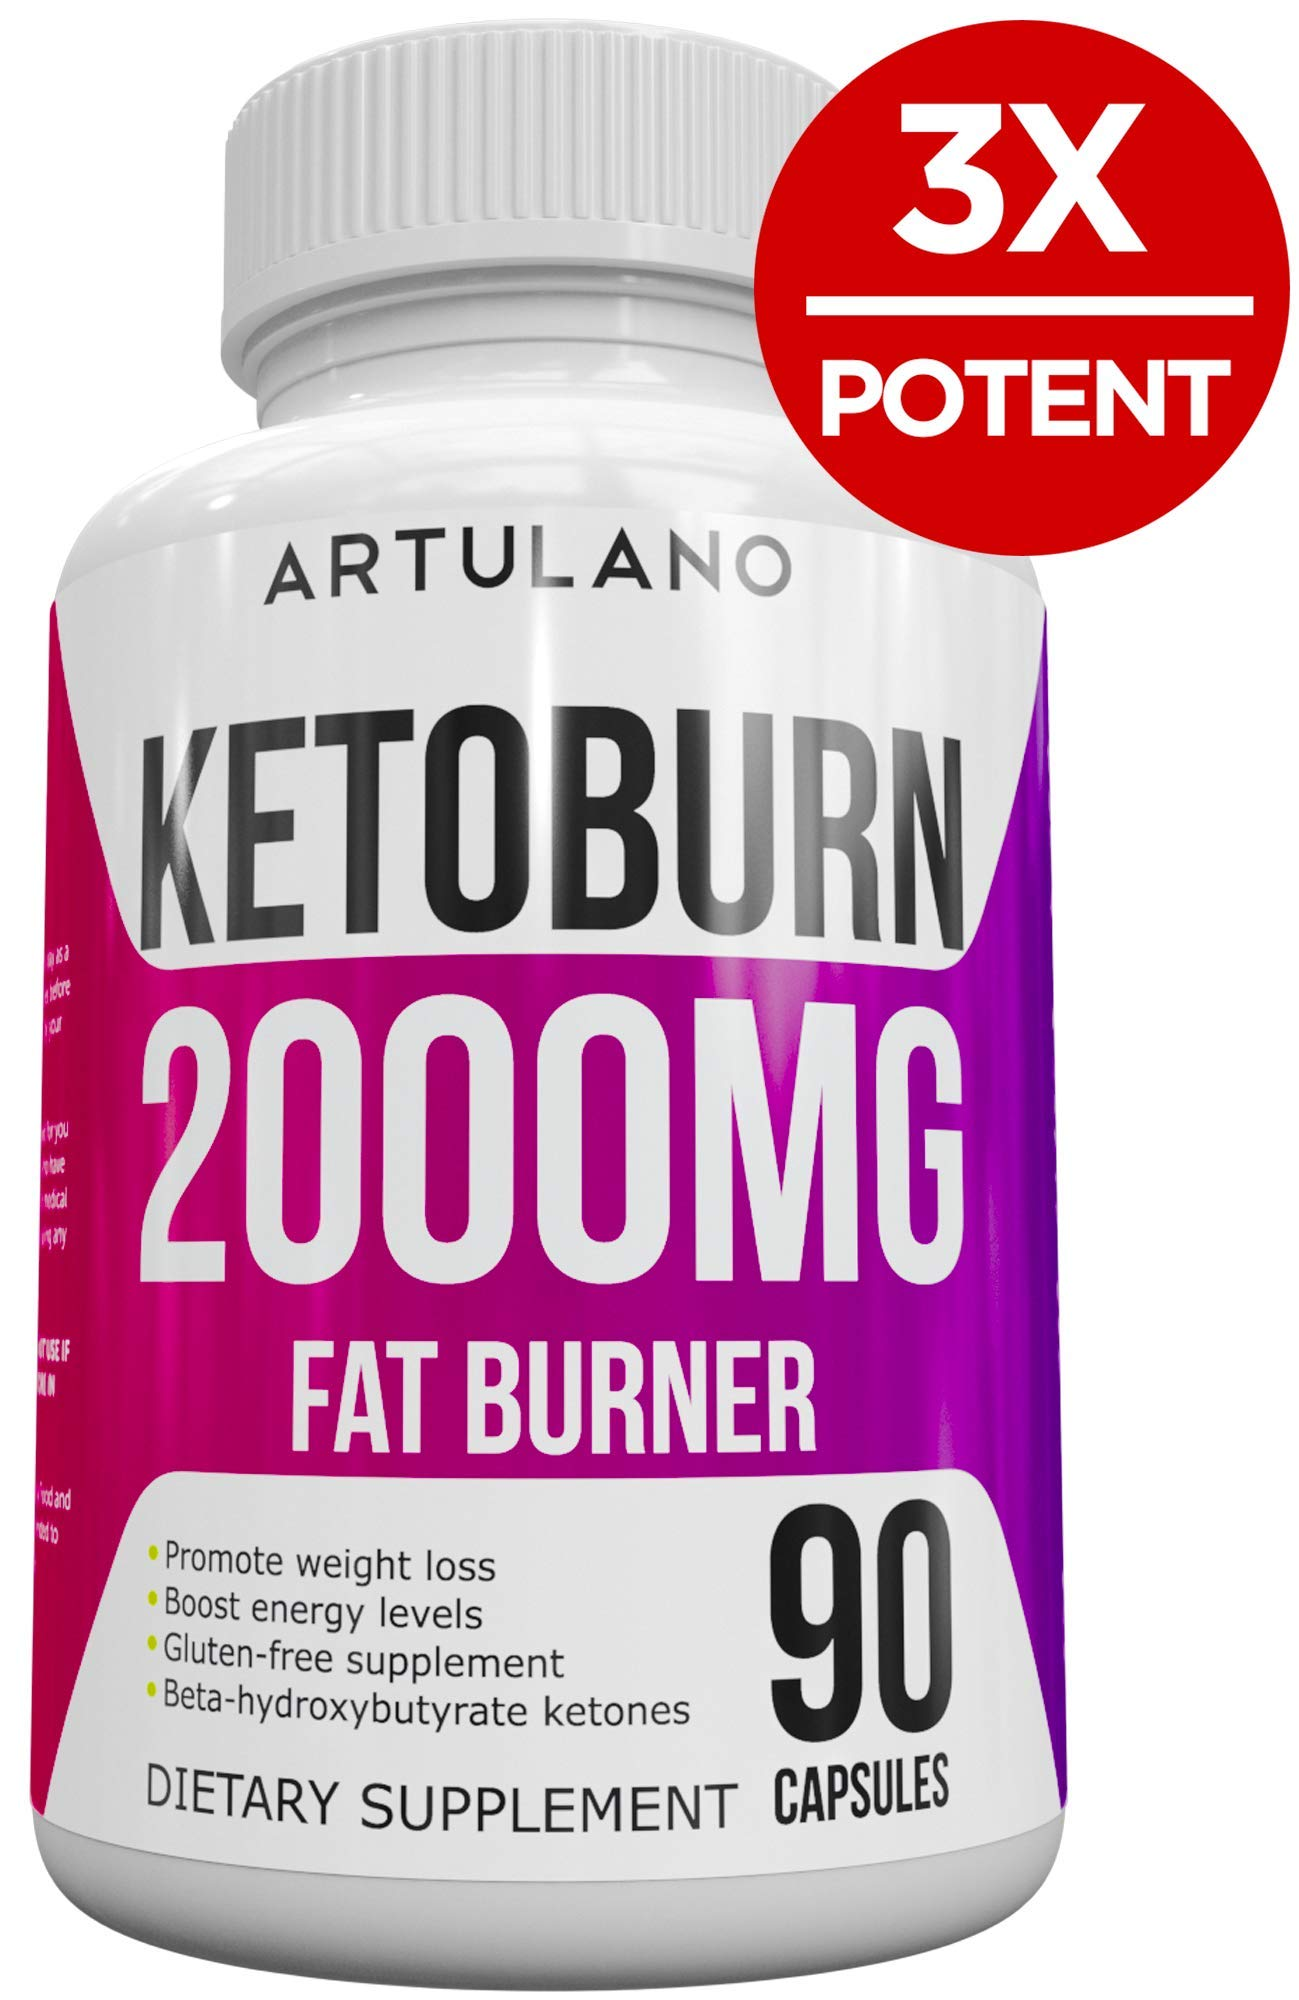 Best Keto Pills - 3X Potent (2000mg | 90 Capsules) - Weight Loss Keto Burn Diet Pills - Boost Energy and Metabolism - Exogenous Keto BHB Supplement for Women and Men - 90 Capsules by Arvesa